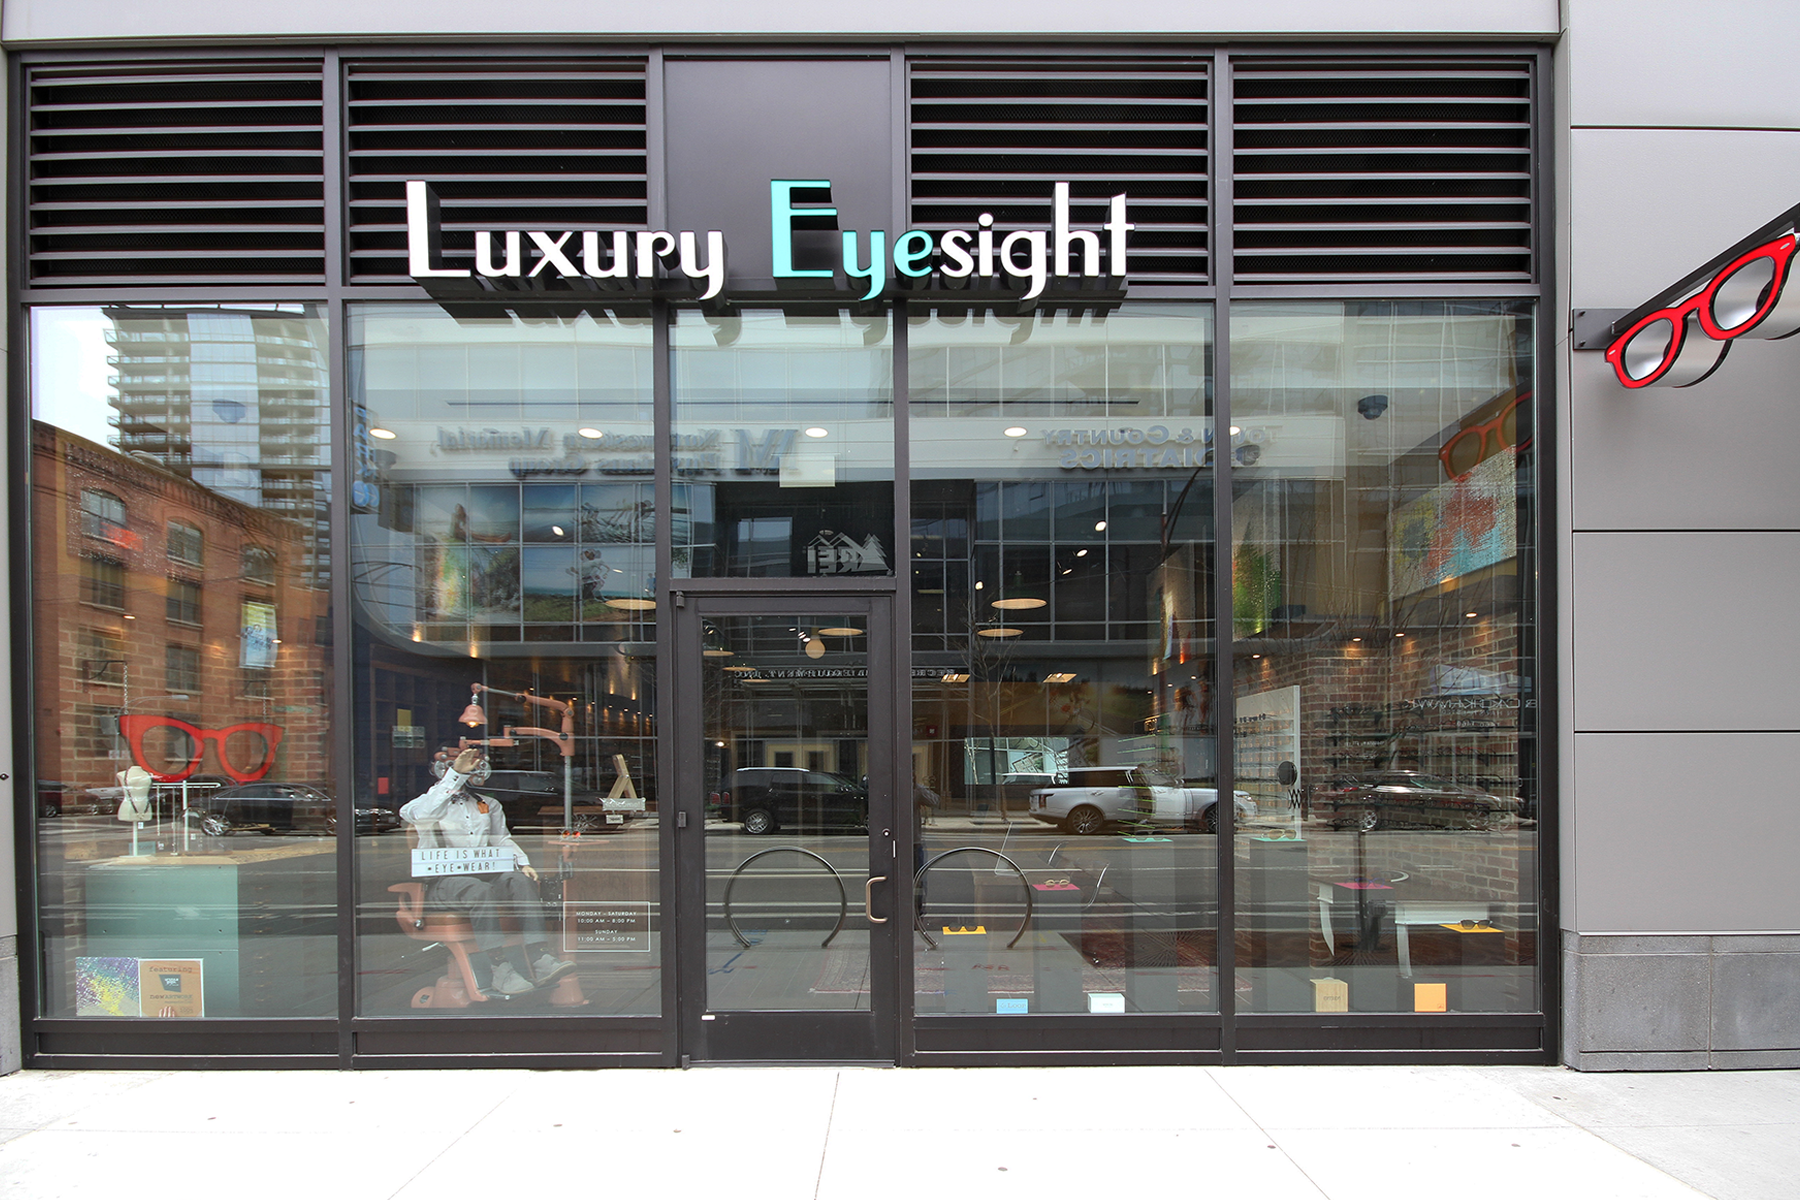 986204d3 Press | The World's Finest Handcrafted Eyewear | Luxury Eyesight Chicago